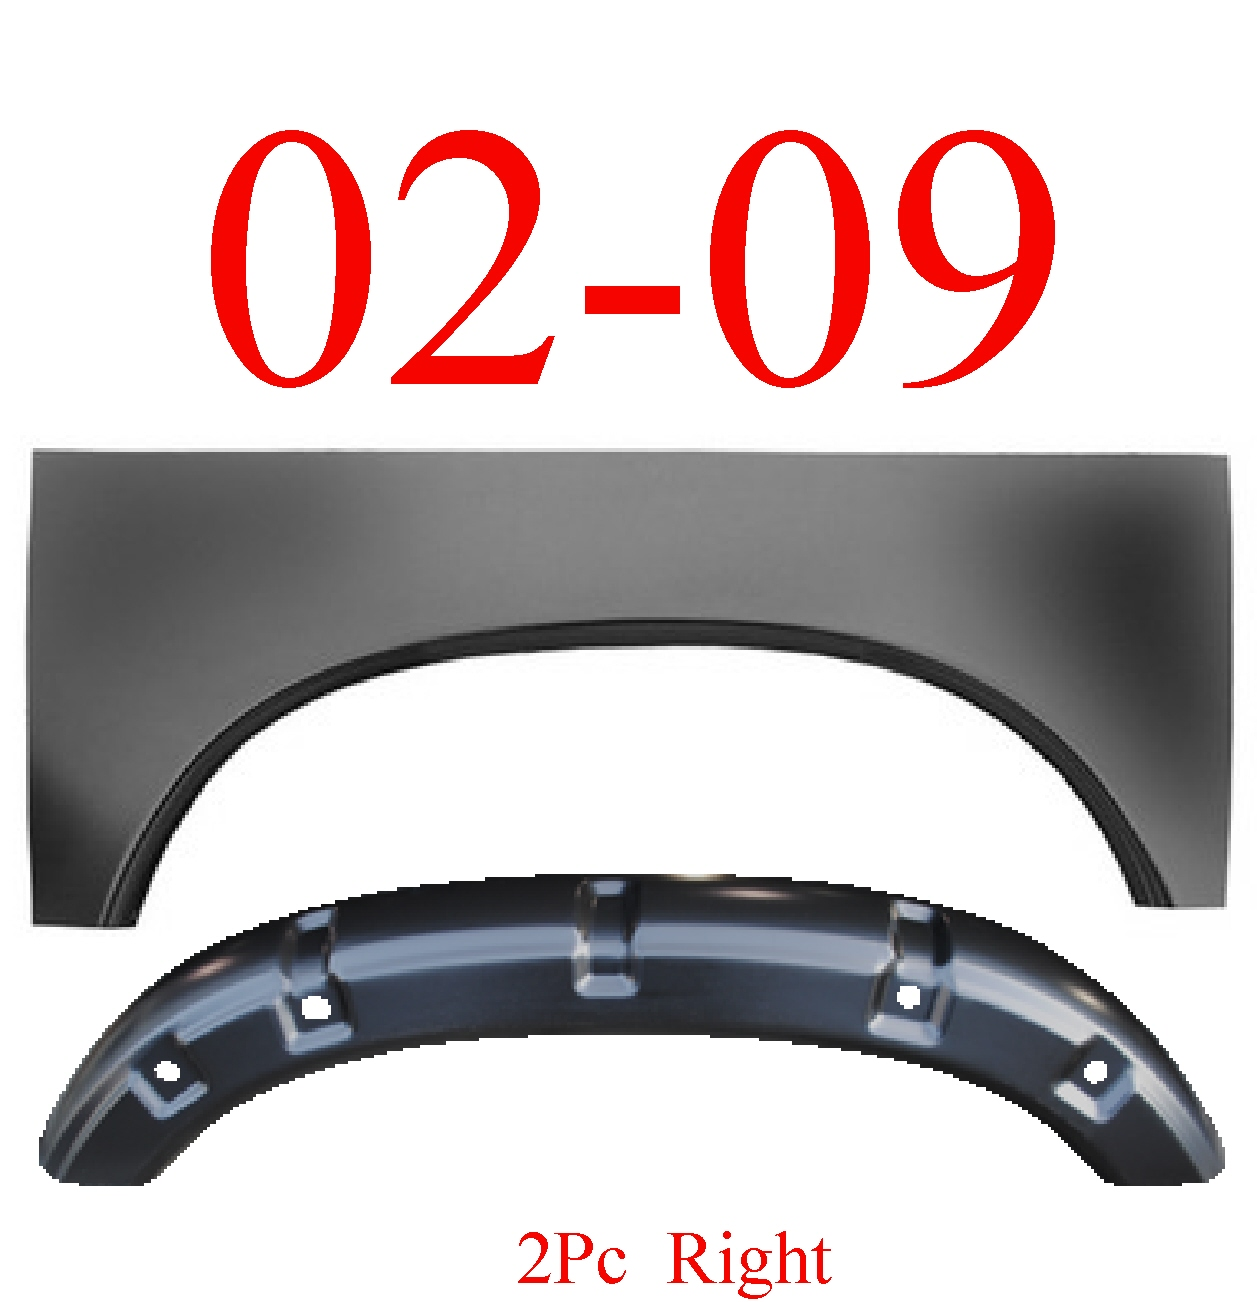 02-09 Dodge Ram 2Pc Right Arch & Outer Wheelhouse Arch Panel